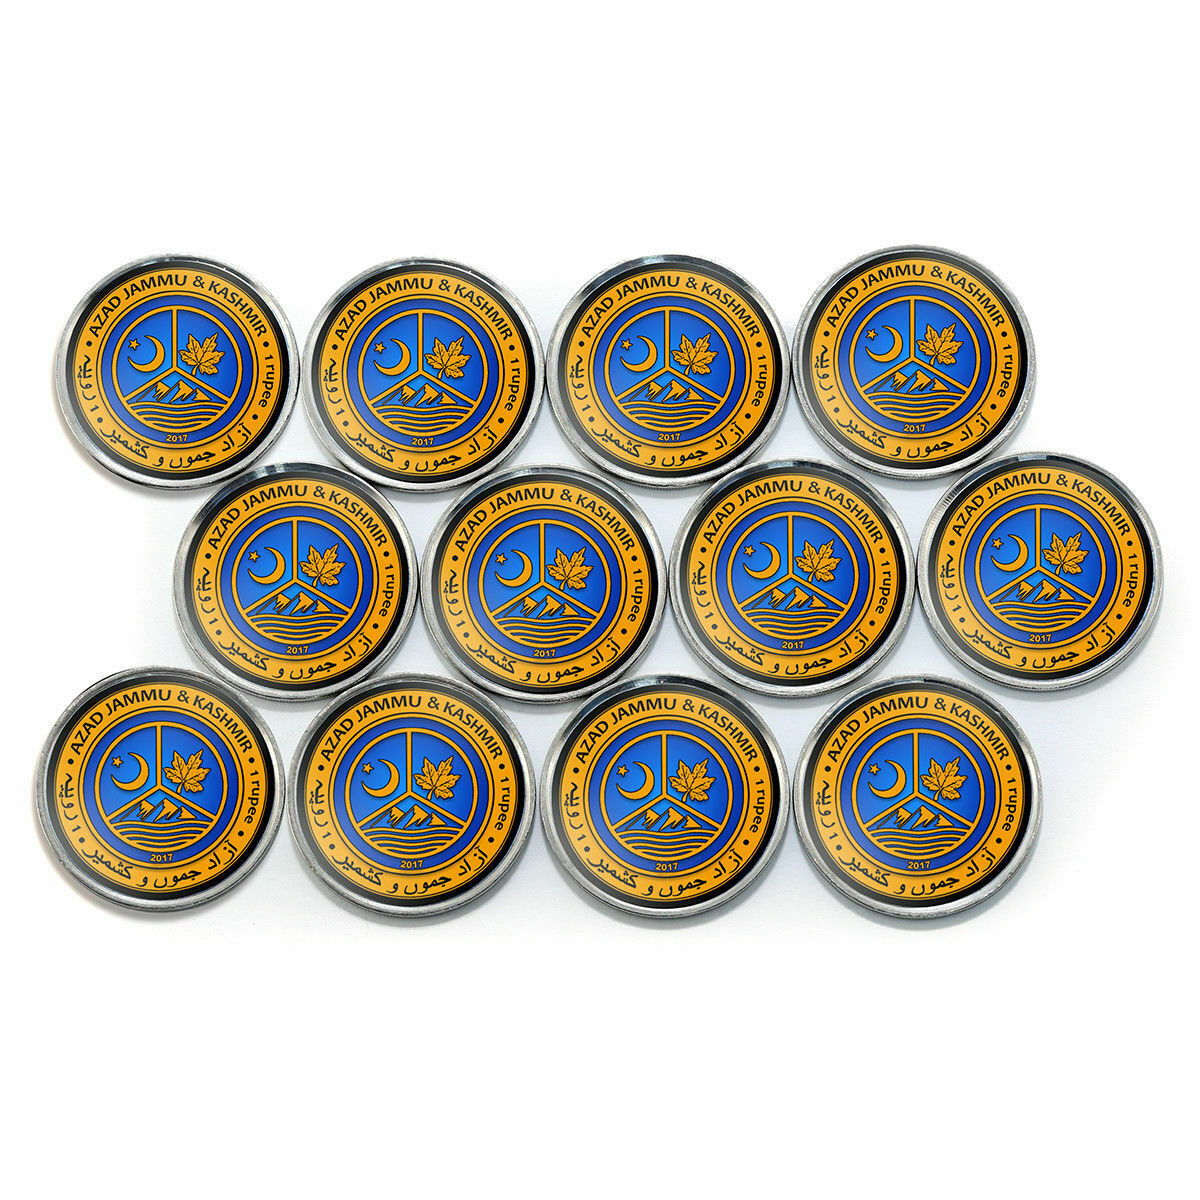 Azad Jammu and Kashmir 1 rupee set of 12 coins Lunar calendar 2017